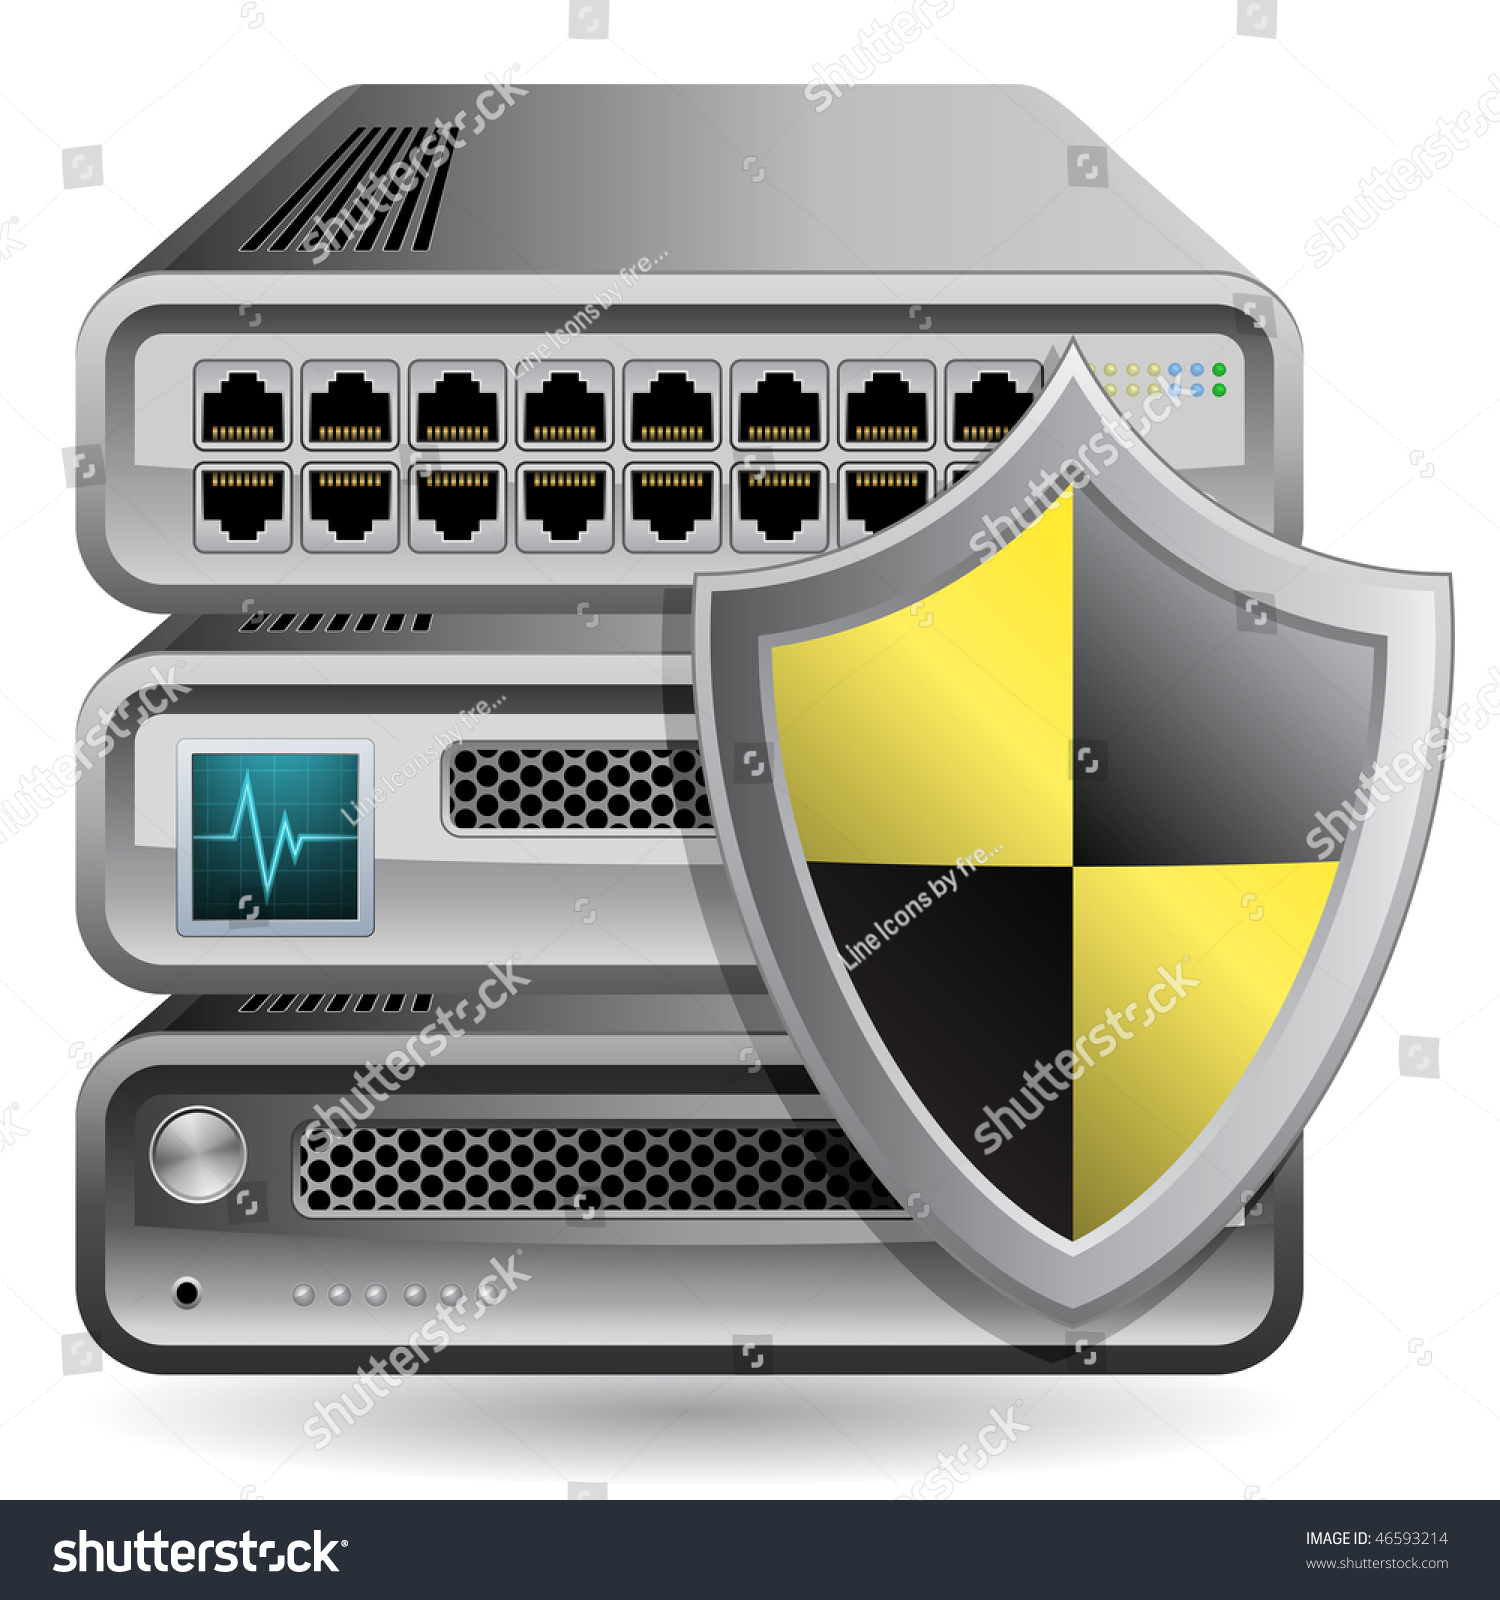 Network Equipment Icons : Network firewall router switch server stock vector